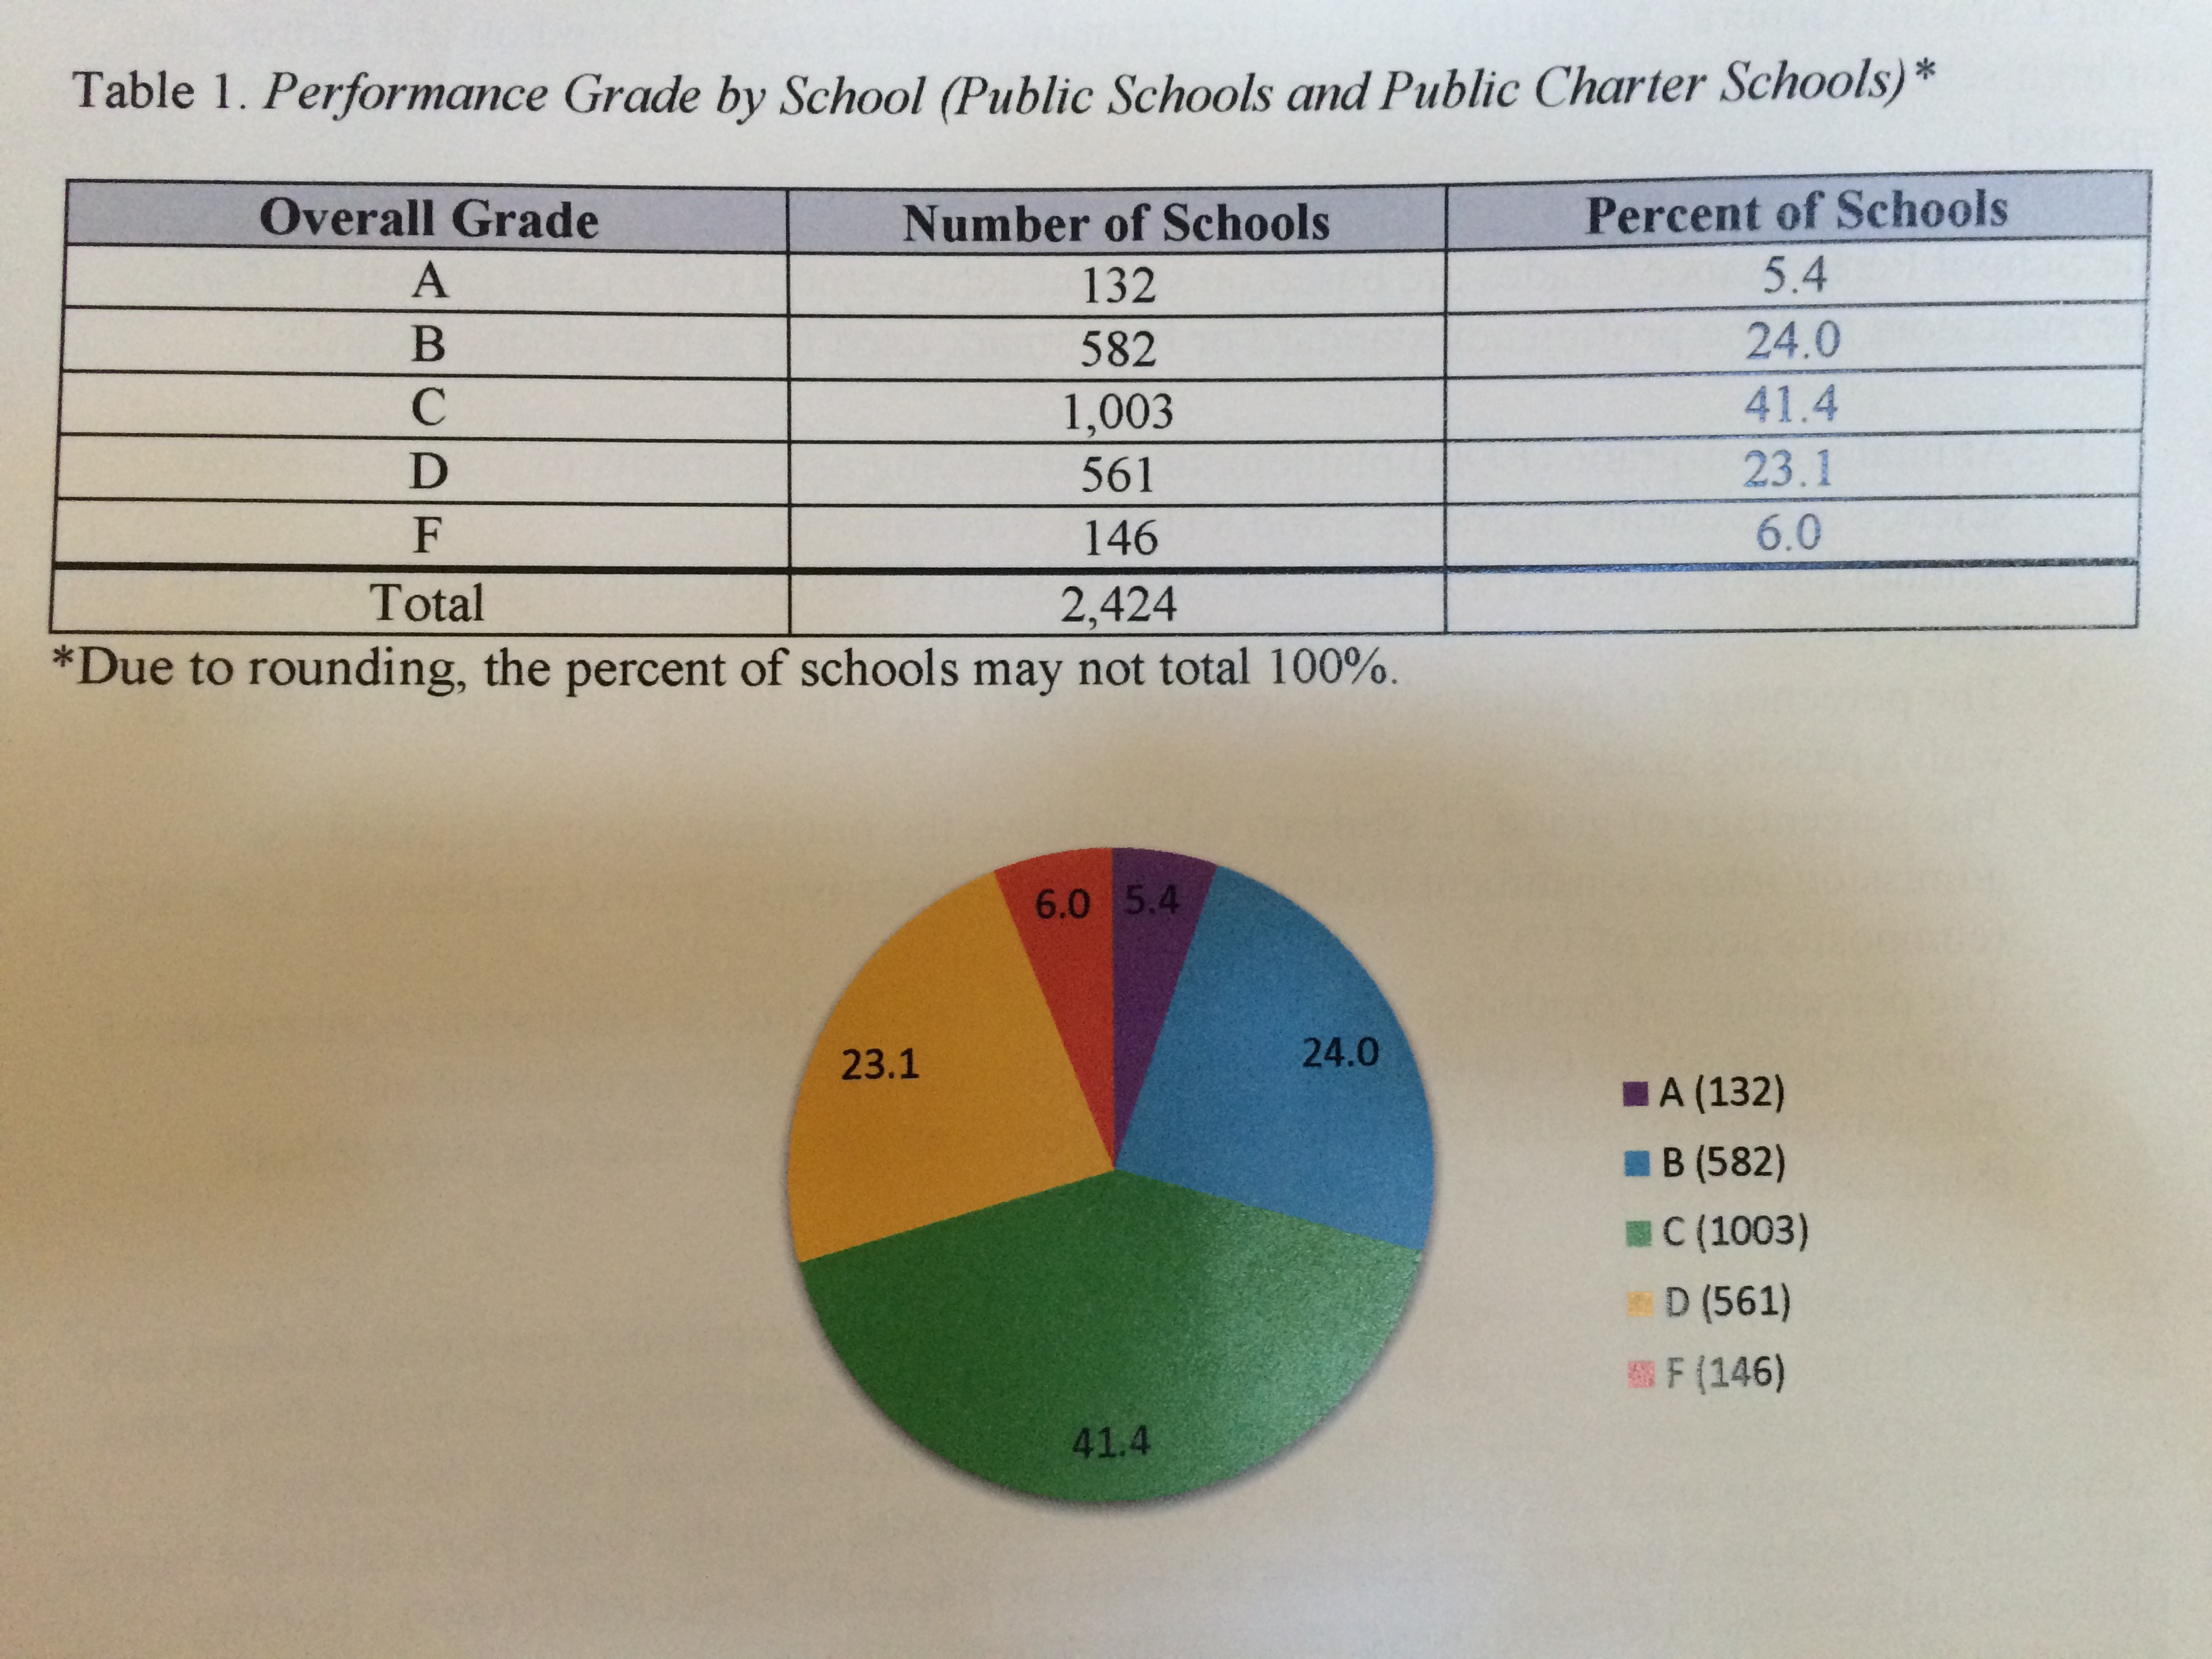 High poverty schools receive vast majority of state's D and